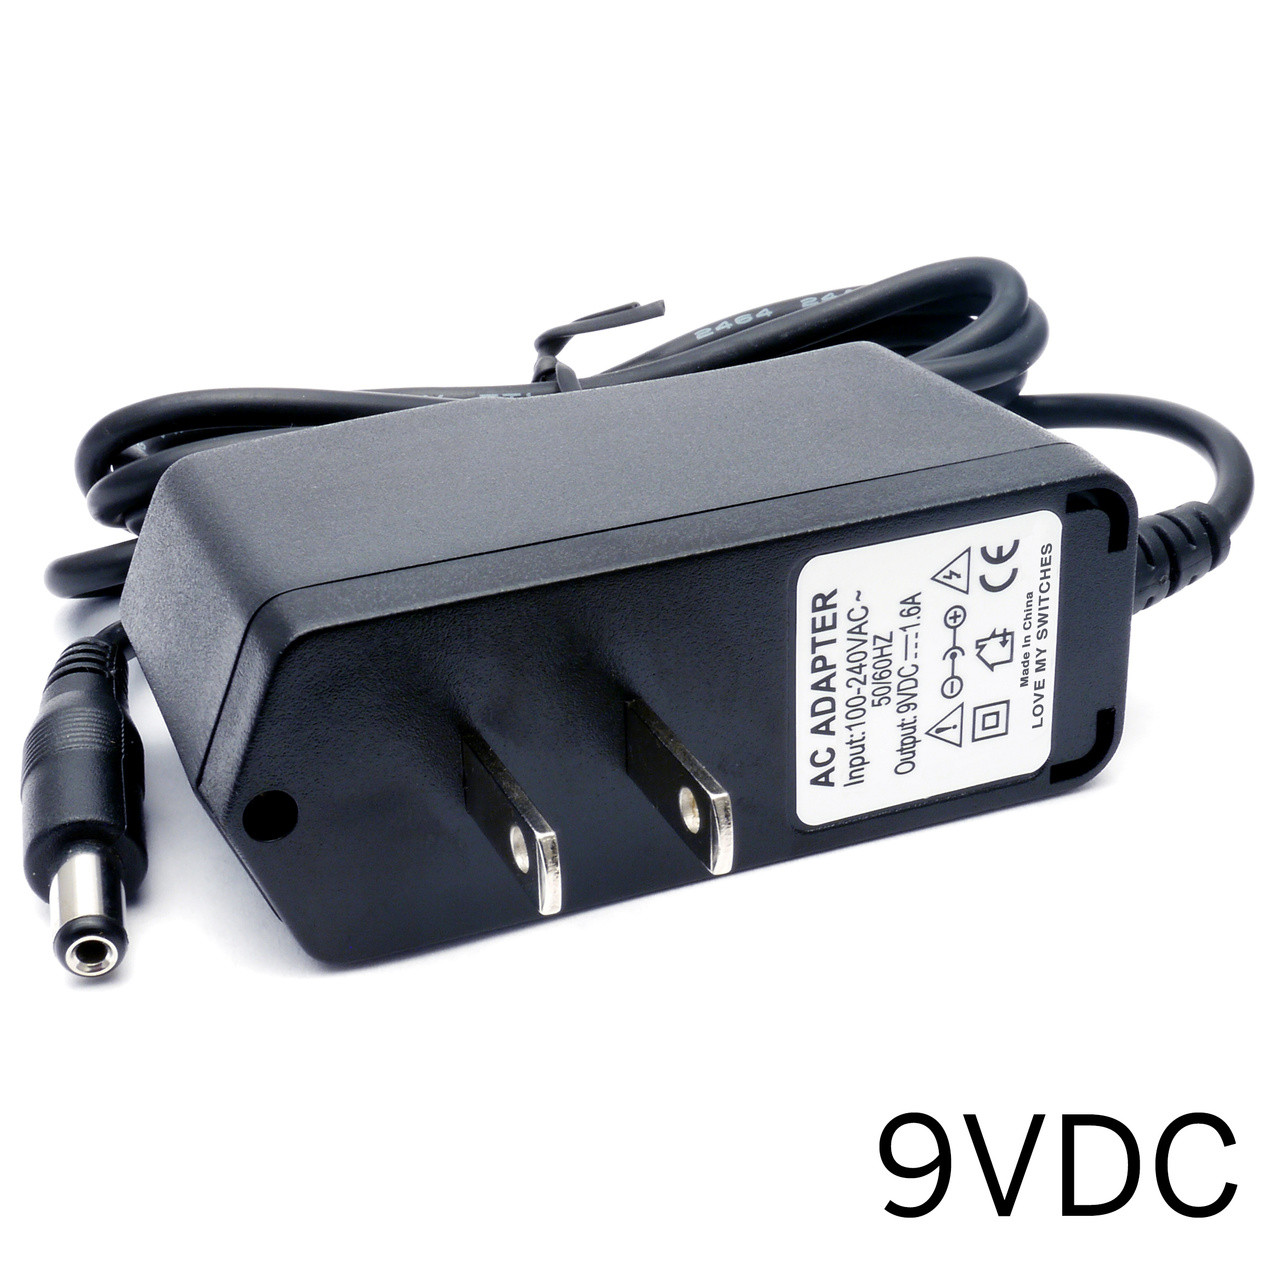 Pedal Power Supply - 9V DC 1 6A